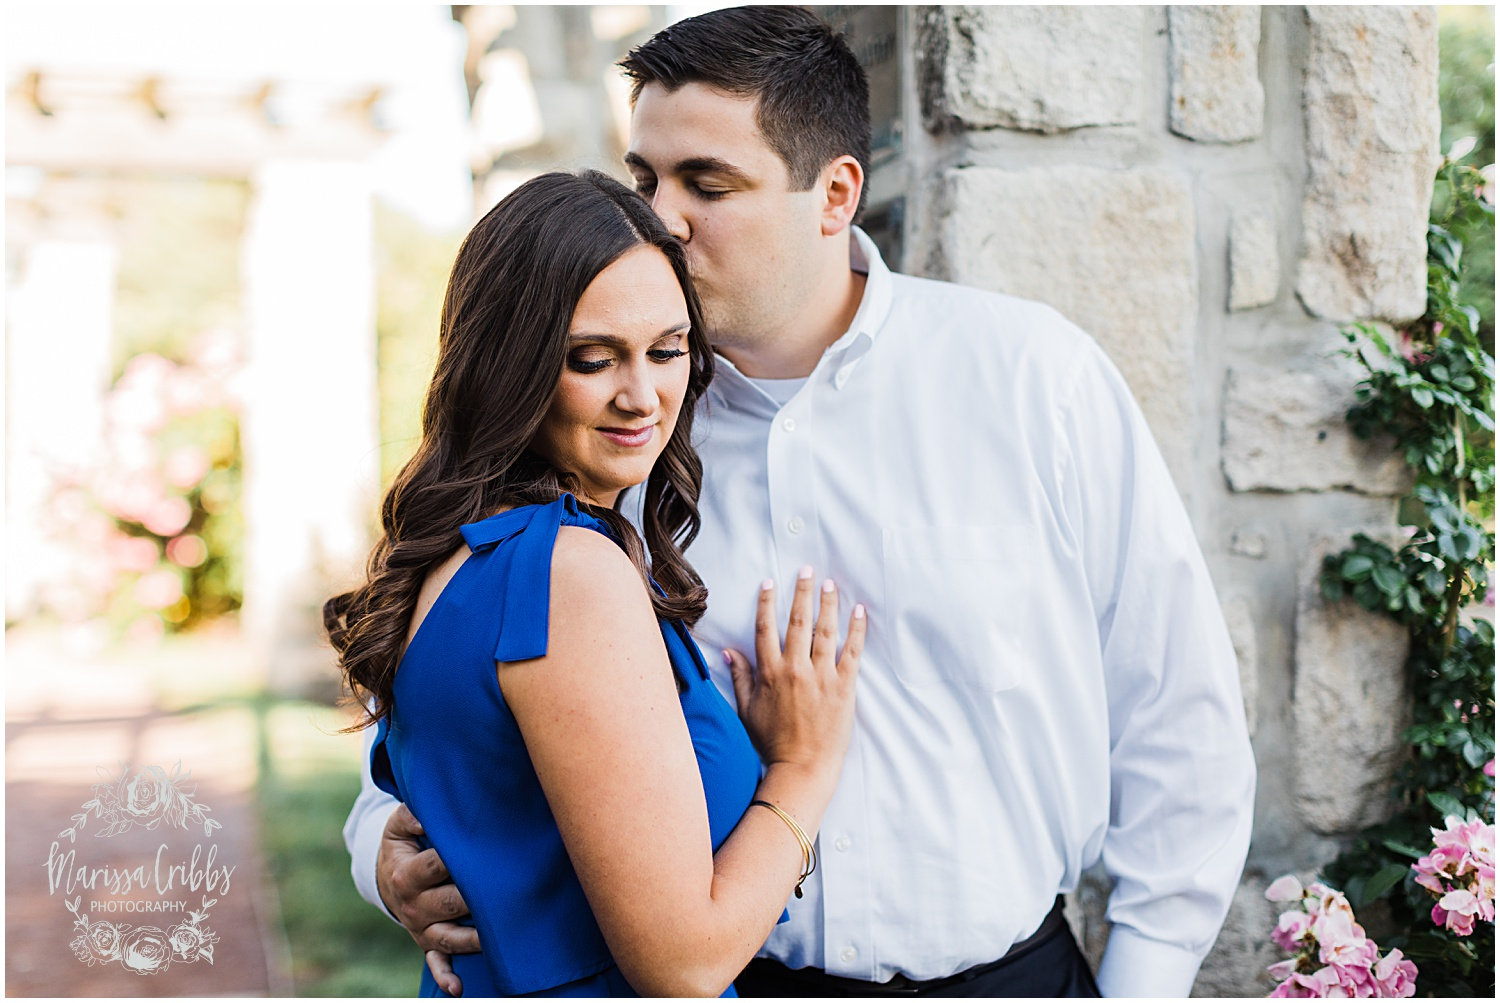 MORGAN & KEVIN ENGAGEMENT BLOG | MARISSA CRIBBS PHOTOGRAPHY_8269.jpg